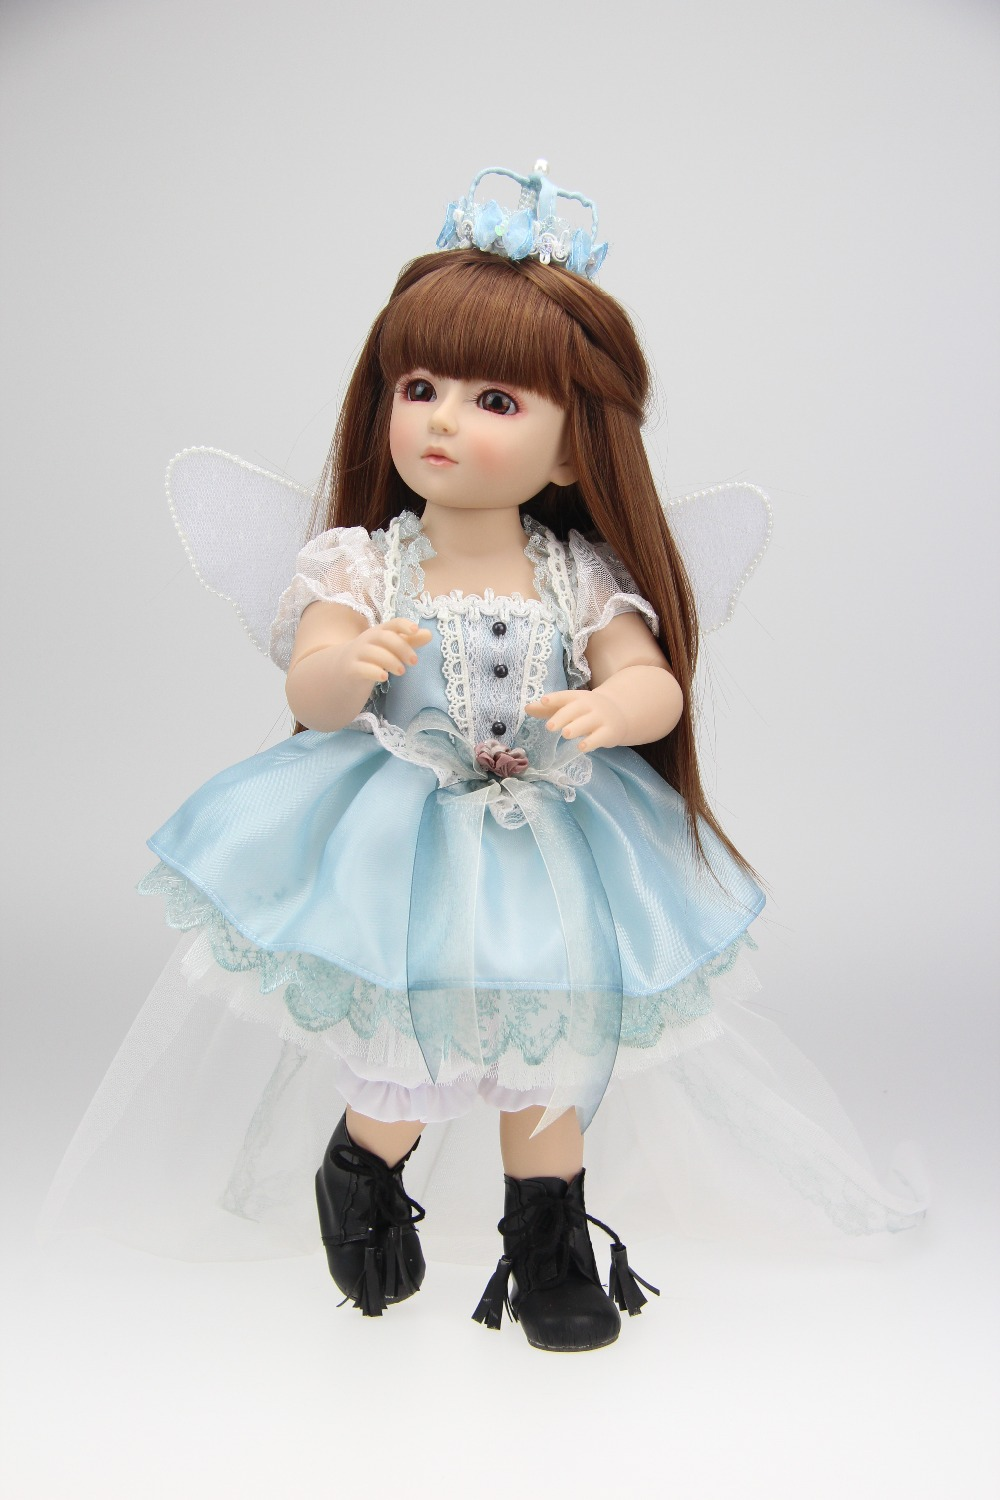 hot selling SD/BJD doll 18inch top quality handmade doll gift for kids hot newest 18 inch handmade vinyl doll bjd doll with dress beautiful princess doll toy for children christmas gift